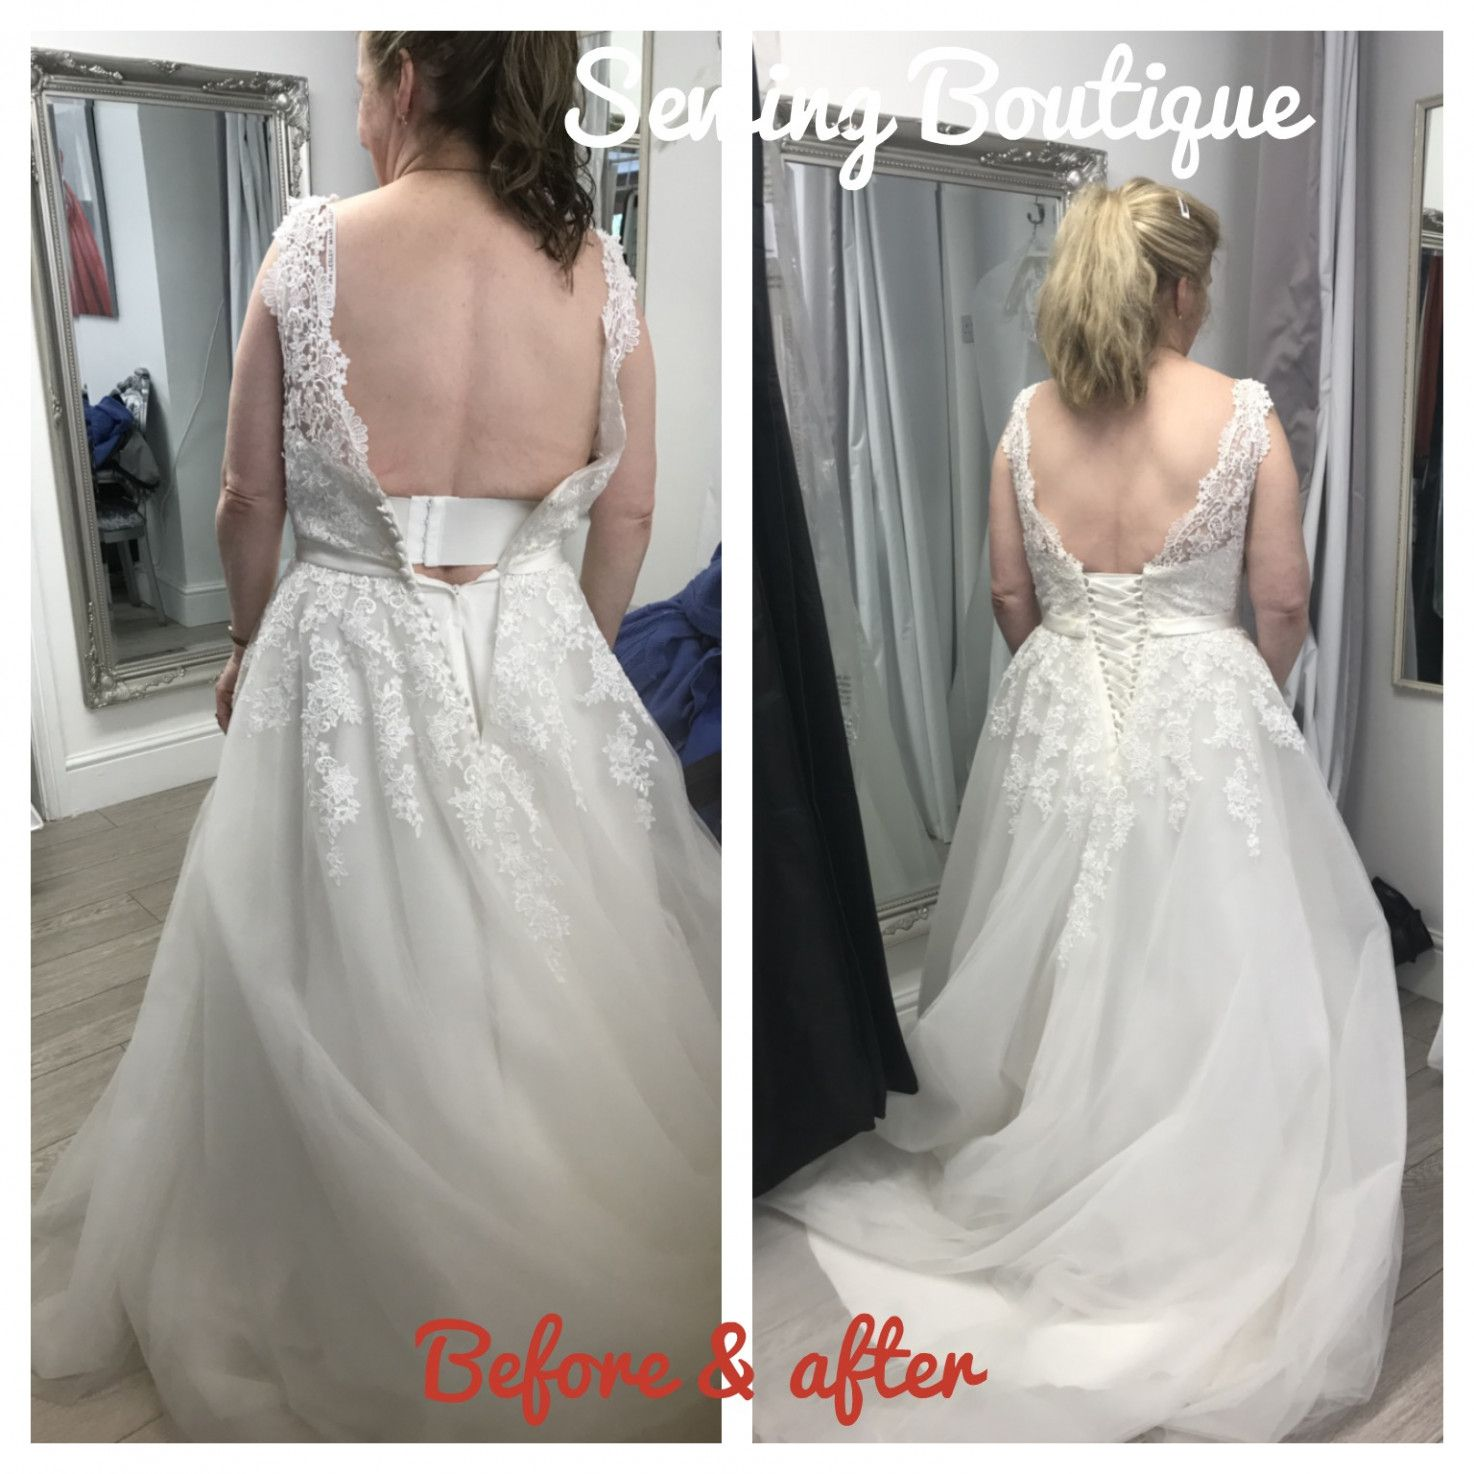 The Cheapest Way To Earn Your Free Ticket To Cheap Wedding Dress Alterations In 2020 Wedding Gown Alterations Wedding Dress Alterations Gown Alterations